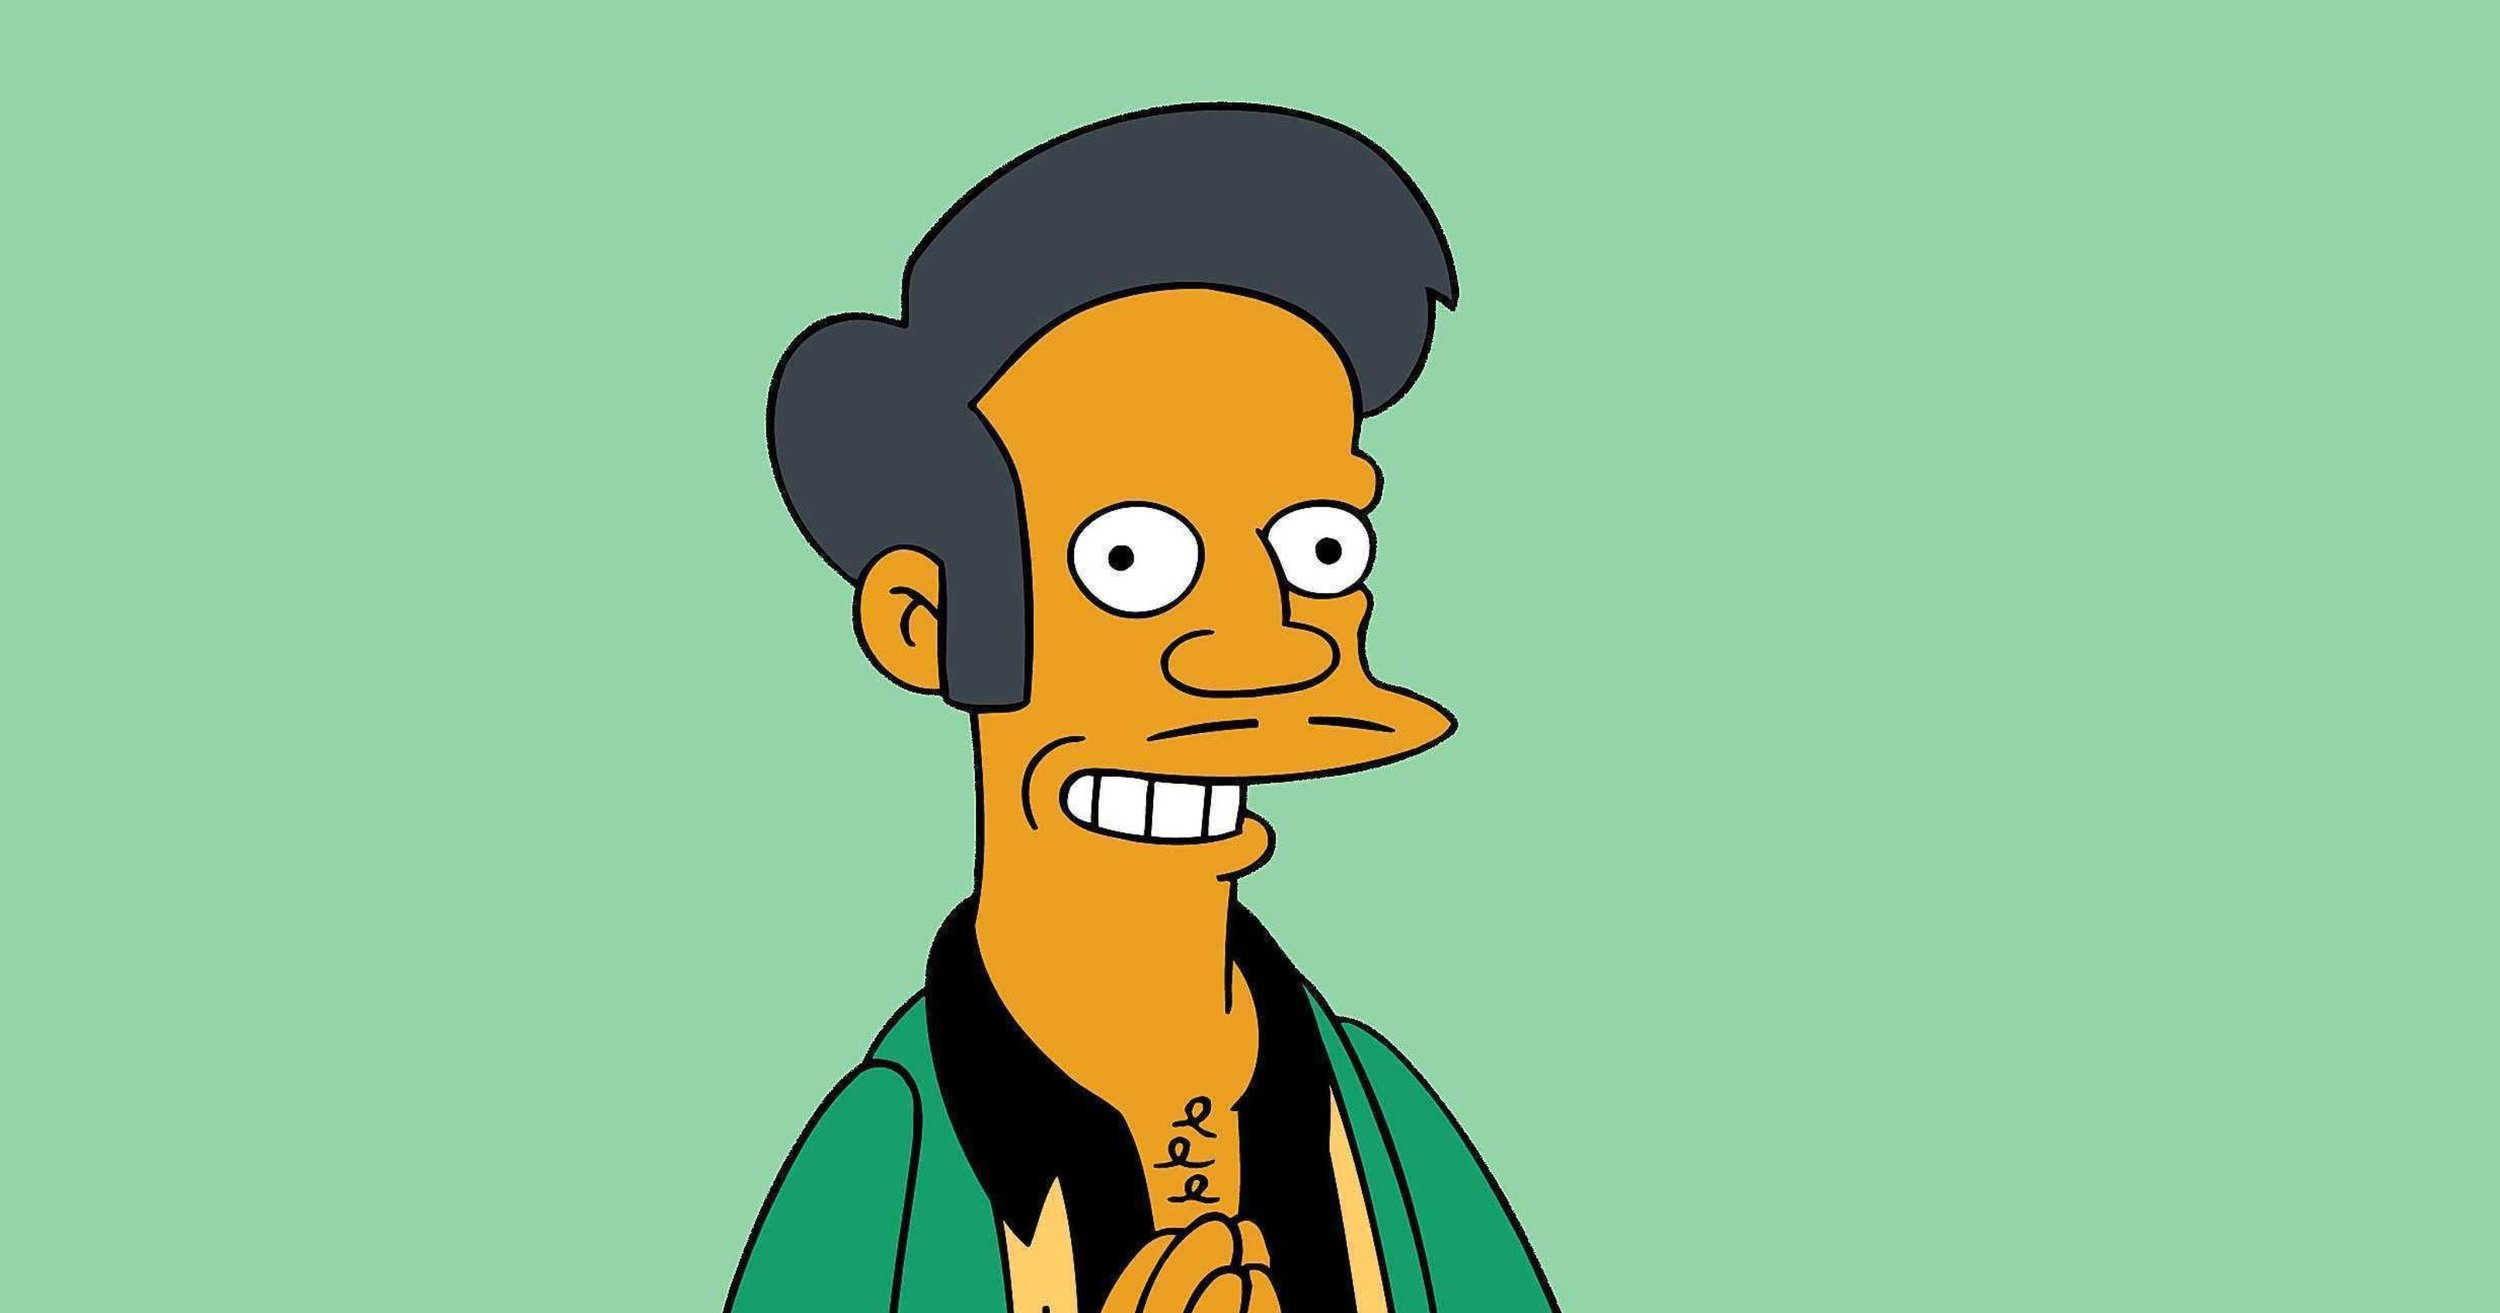 636367595752893815-Simpsons-Apu (1).jpg